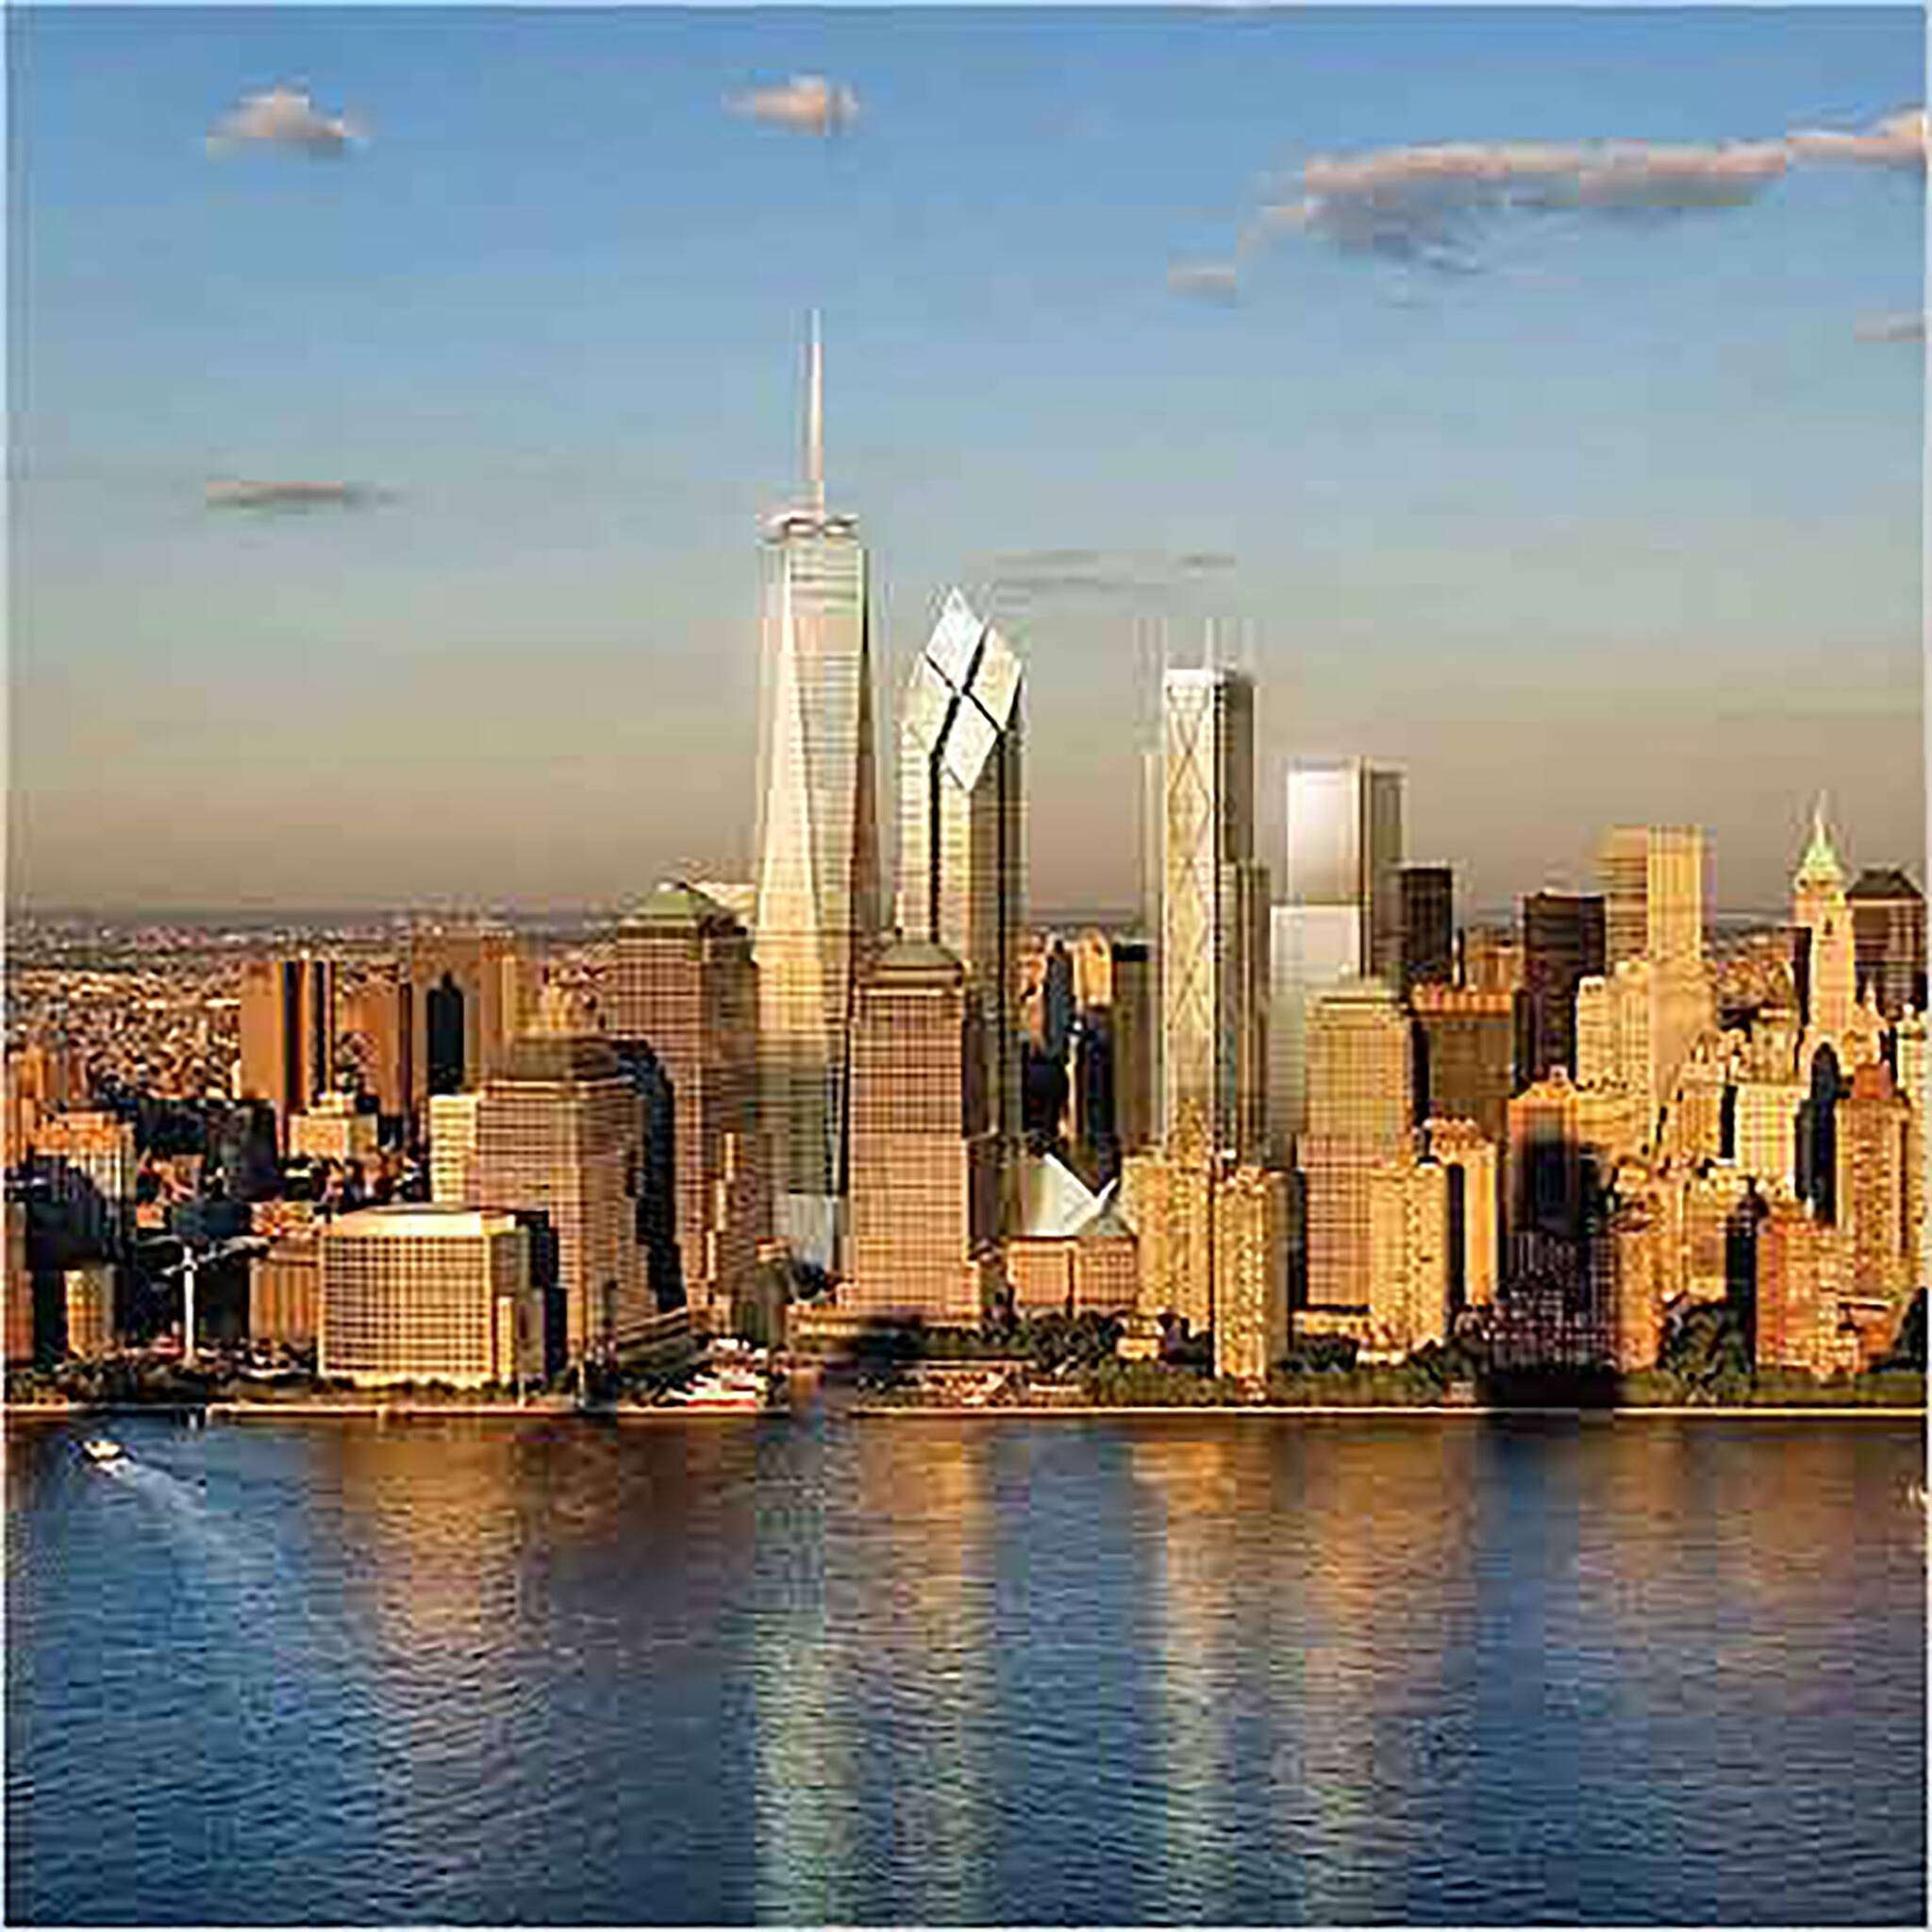 Aerial view of the new skyline of Lower Manhattan for the Rising: Rebuilding Ground Zero documentary Co-produced by Danny Forster and Steven Spielberg about the rebuilding of the World Trade Center site in the wake of 9/11.